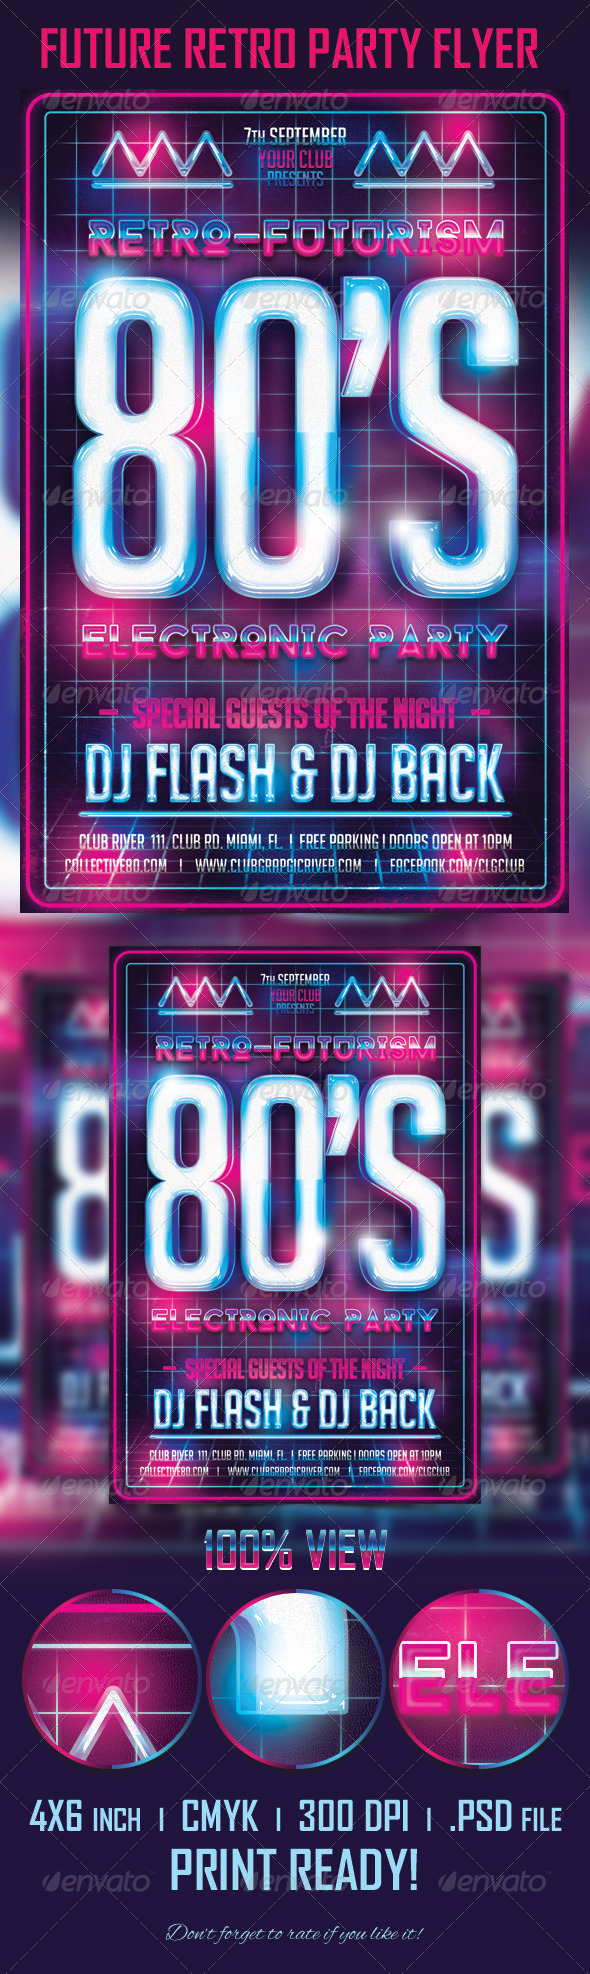 GraphicRiver Future Retro Party Flyer Template 5484327